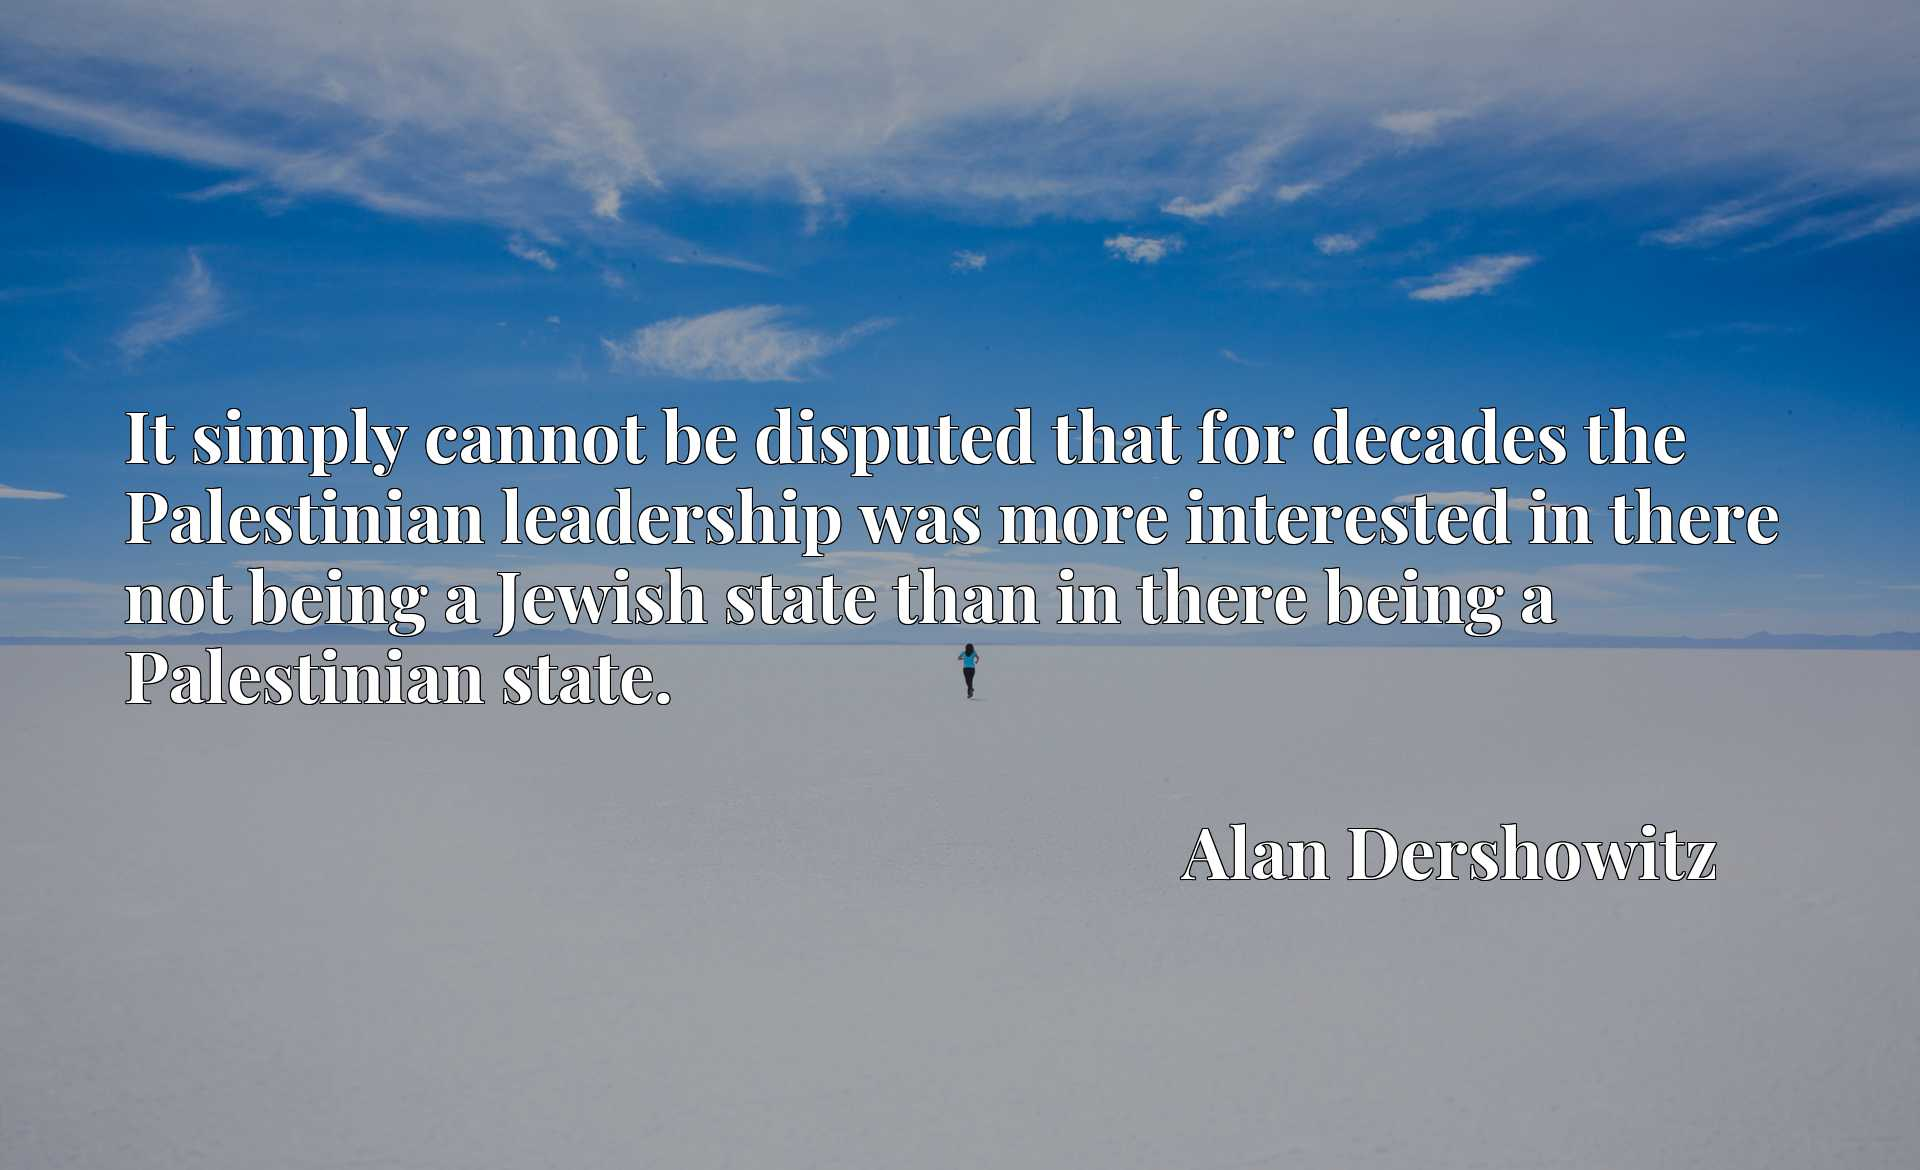 It simply cannot be disputed that for decades the Palestinian leadership was more interested in there not being a Jewish state than in there being a Palestinian state.